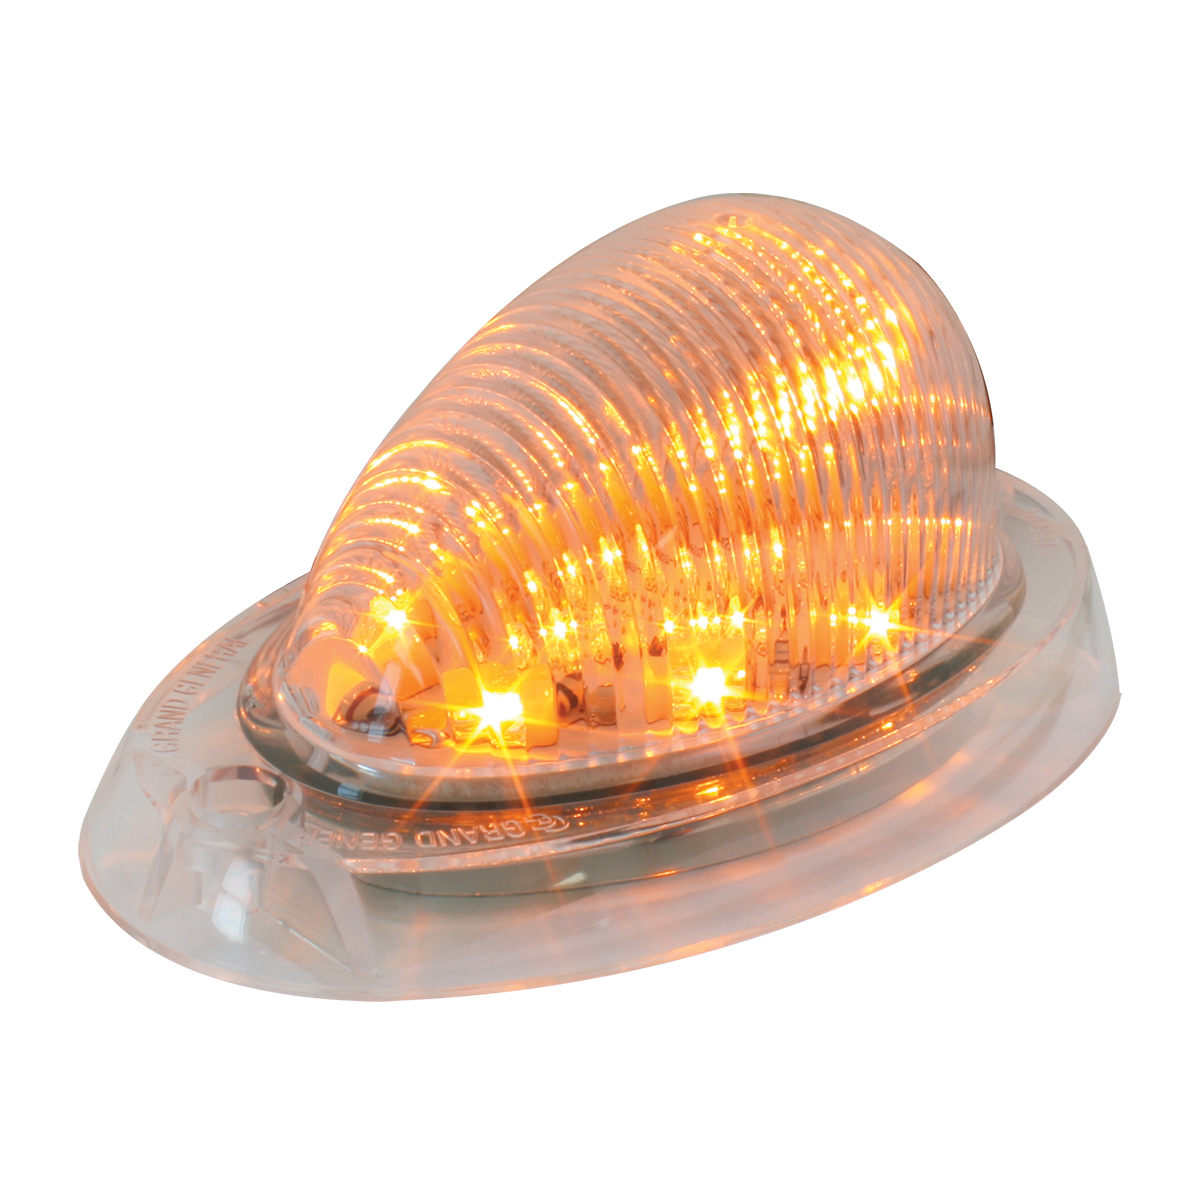 76371 Freightliner Side Marker/Turn LED Light in Amber/Clear